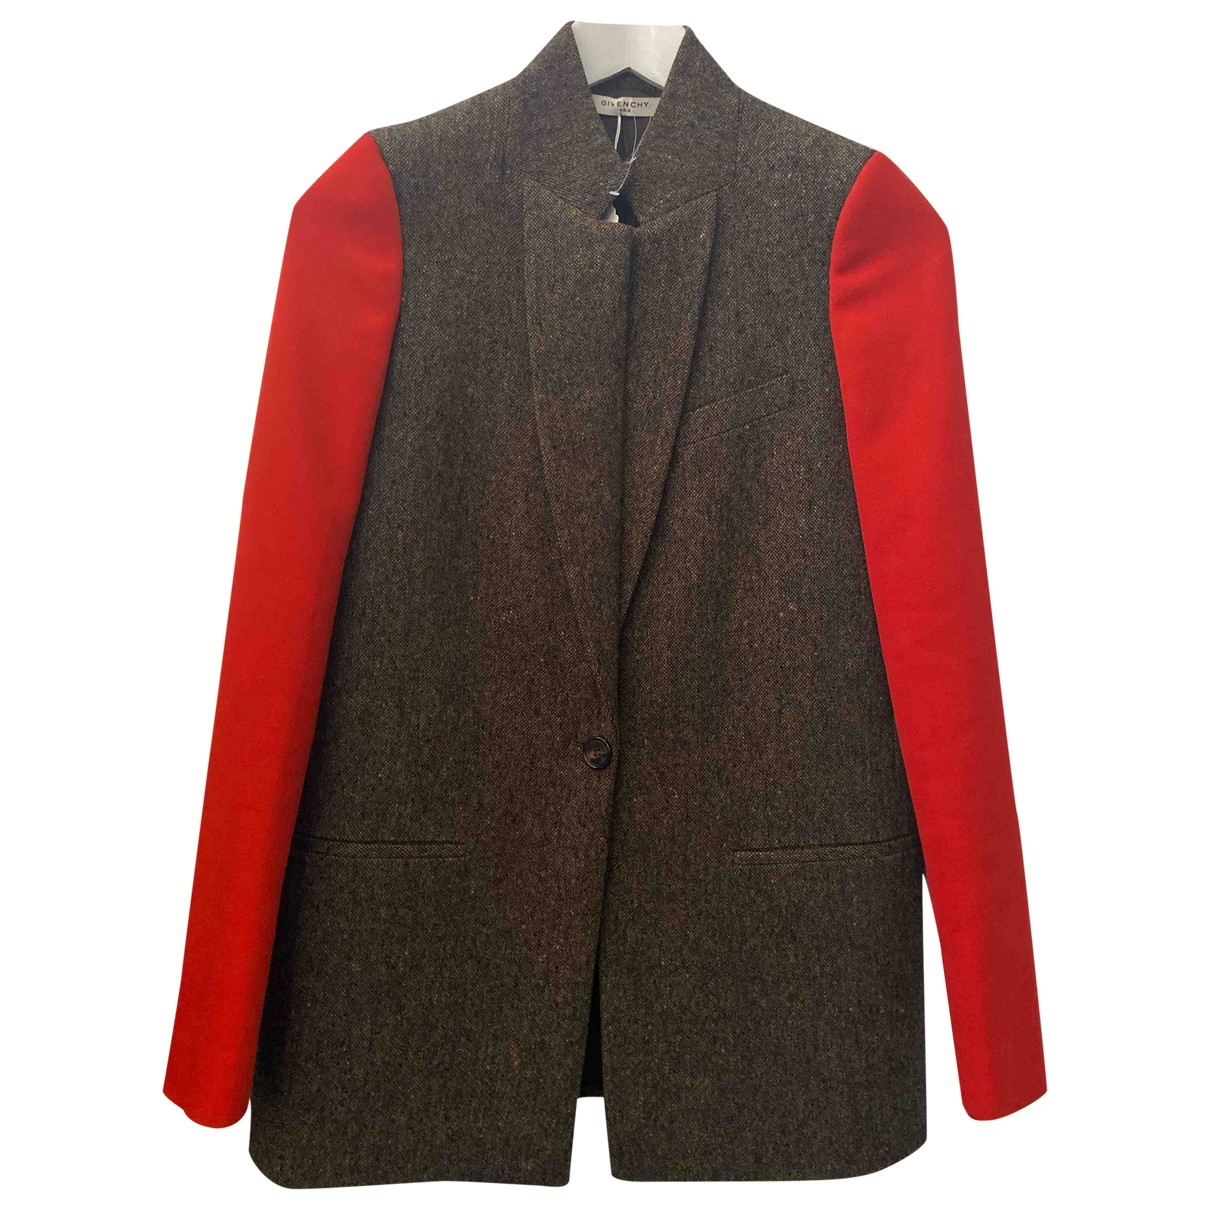 Givenchy \N Brown Wool jacket for Women 34 FR